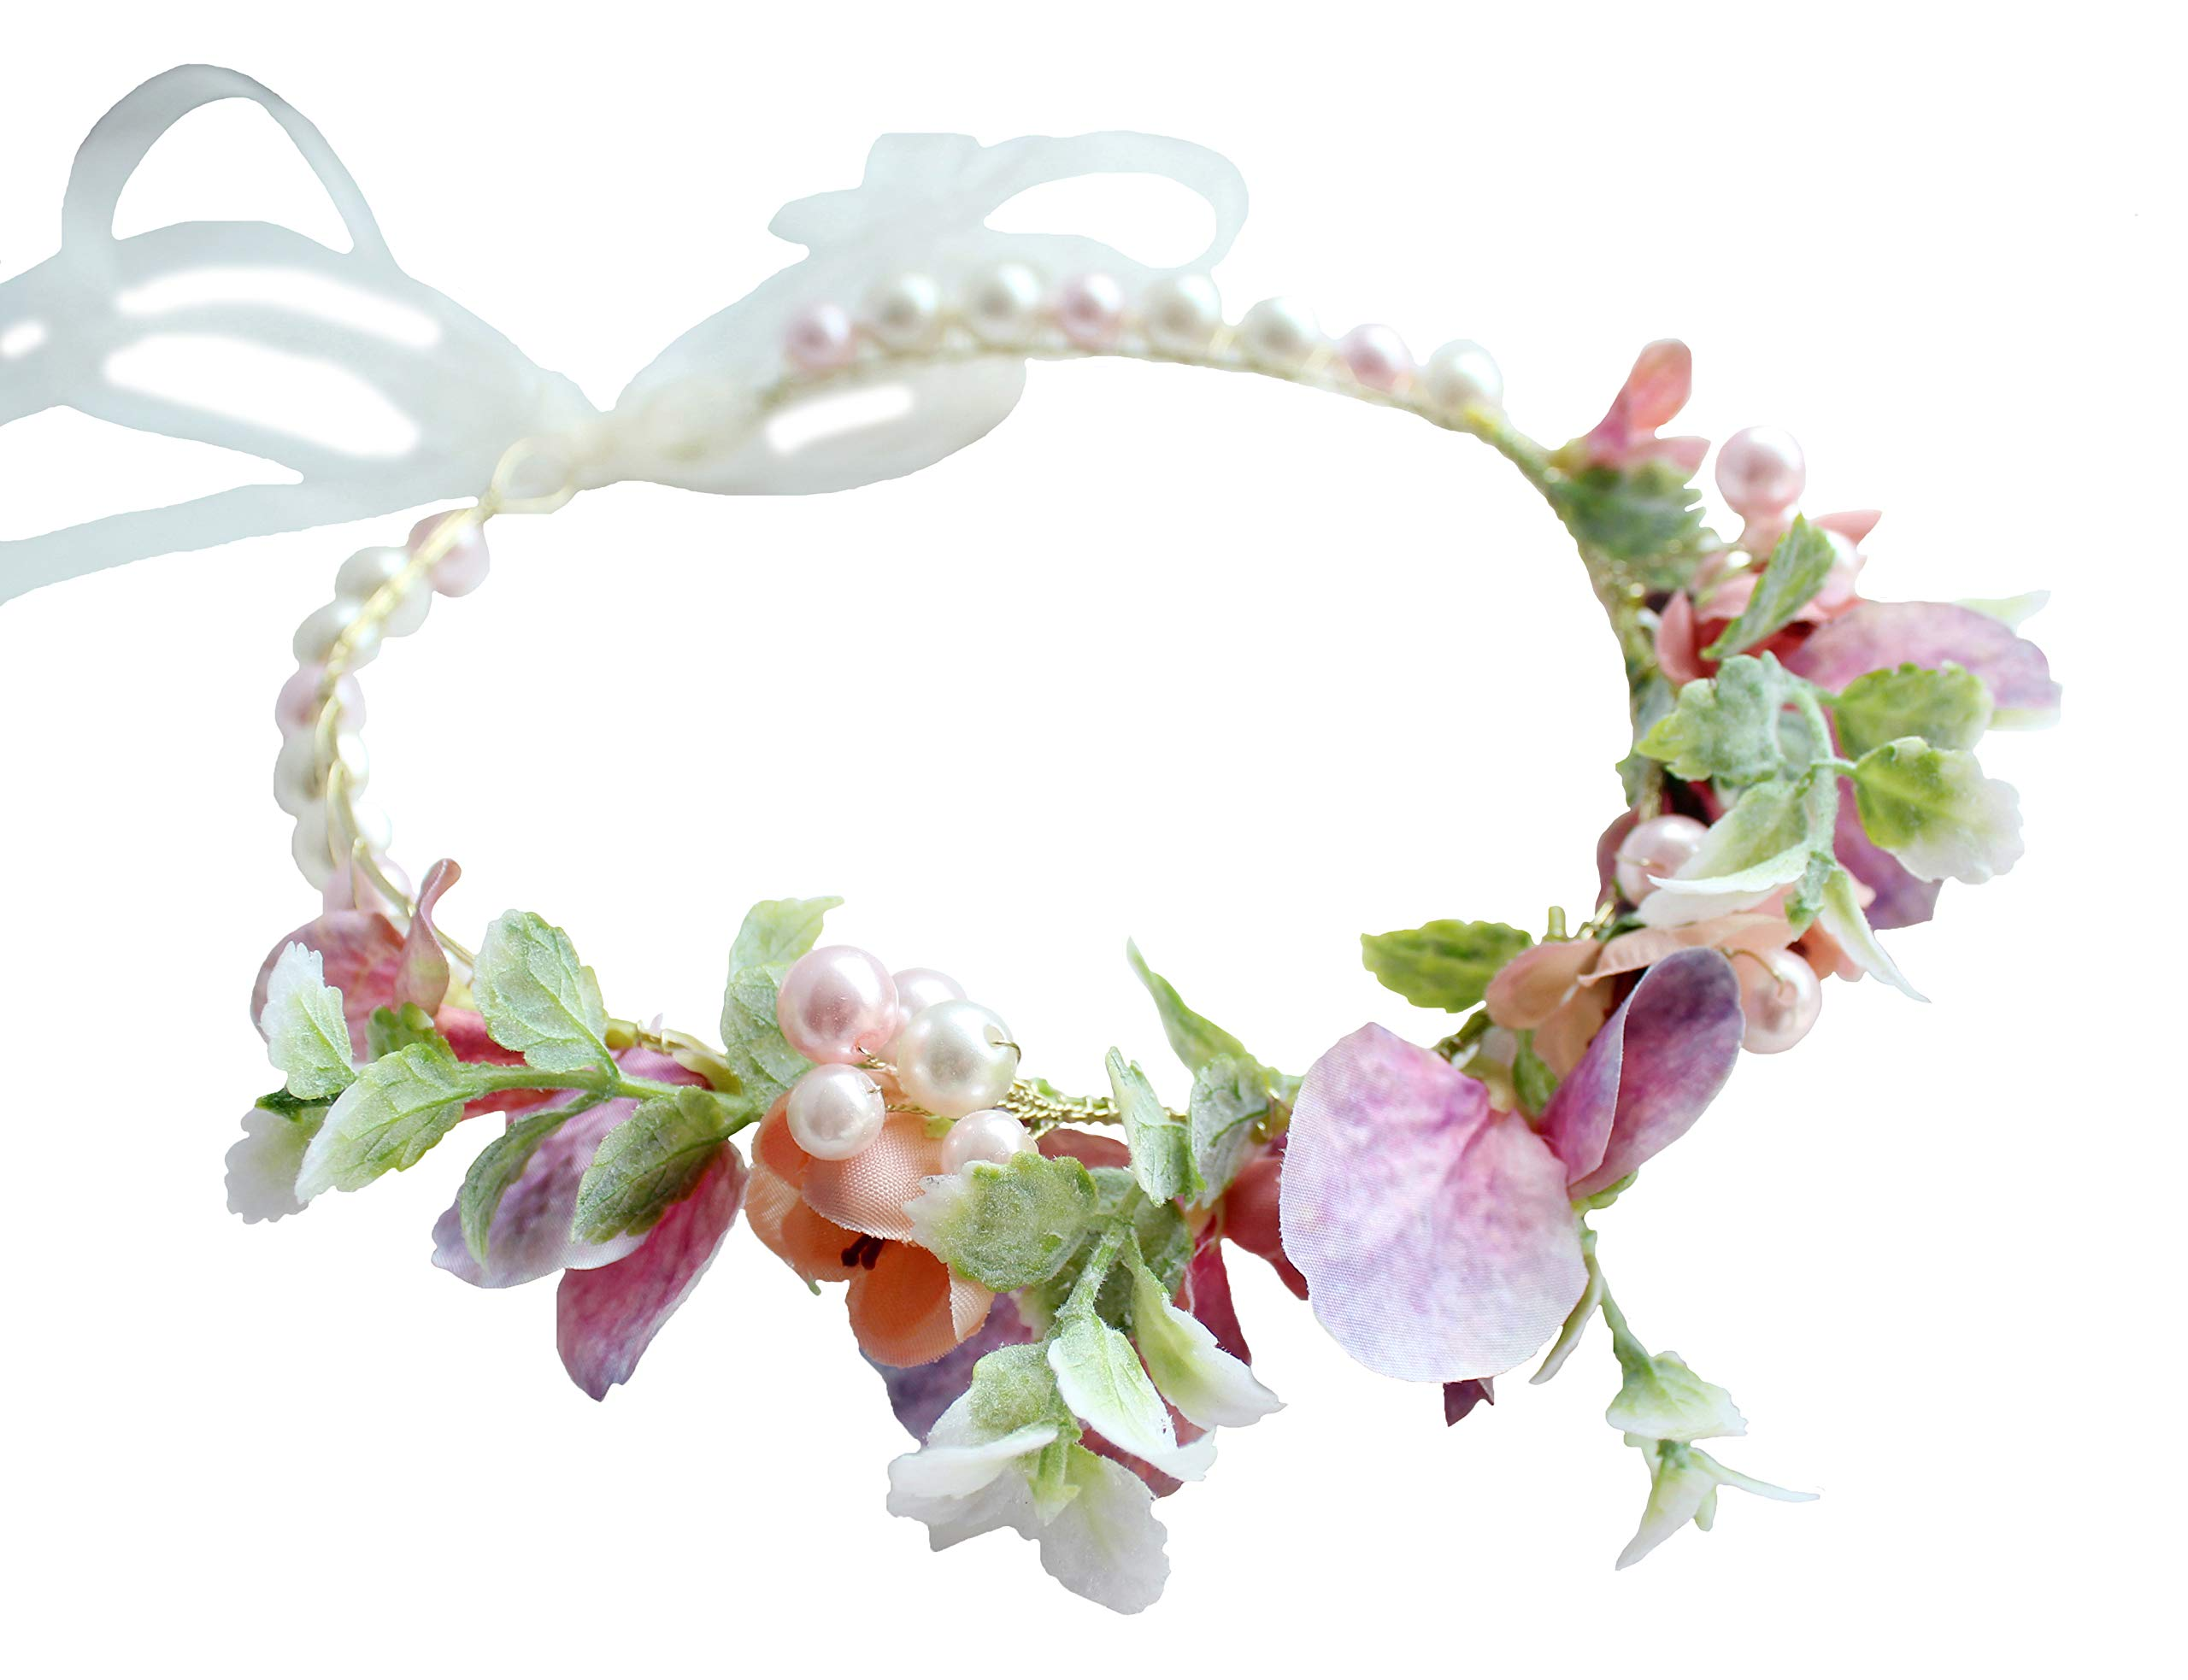 Vivivalue Pearl Flower Crown Floral Garland Headband Flower Halo Headpiece Hair Wreath Boho with Ribbon Wedding Party Photos Festival Pink